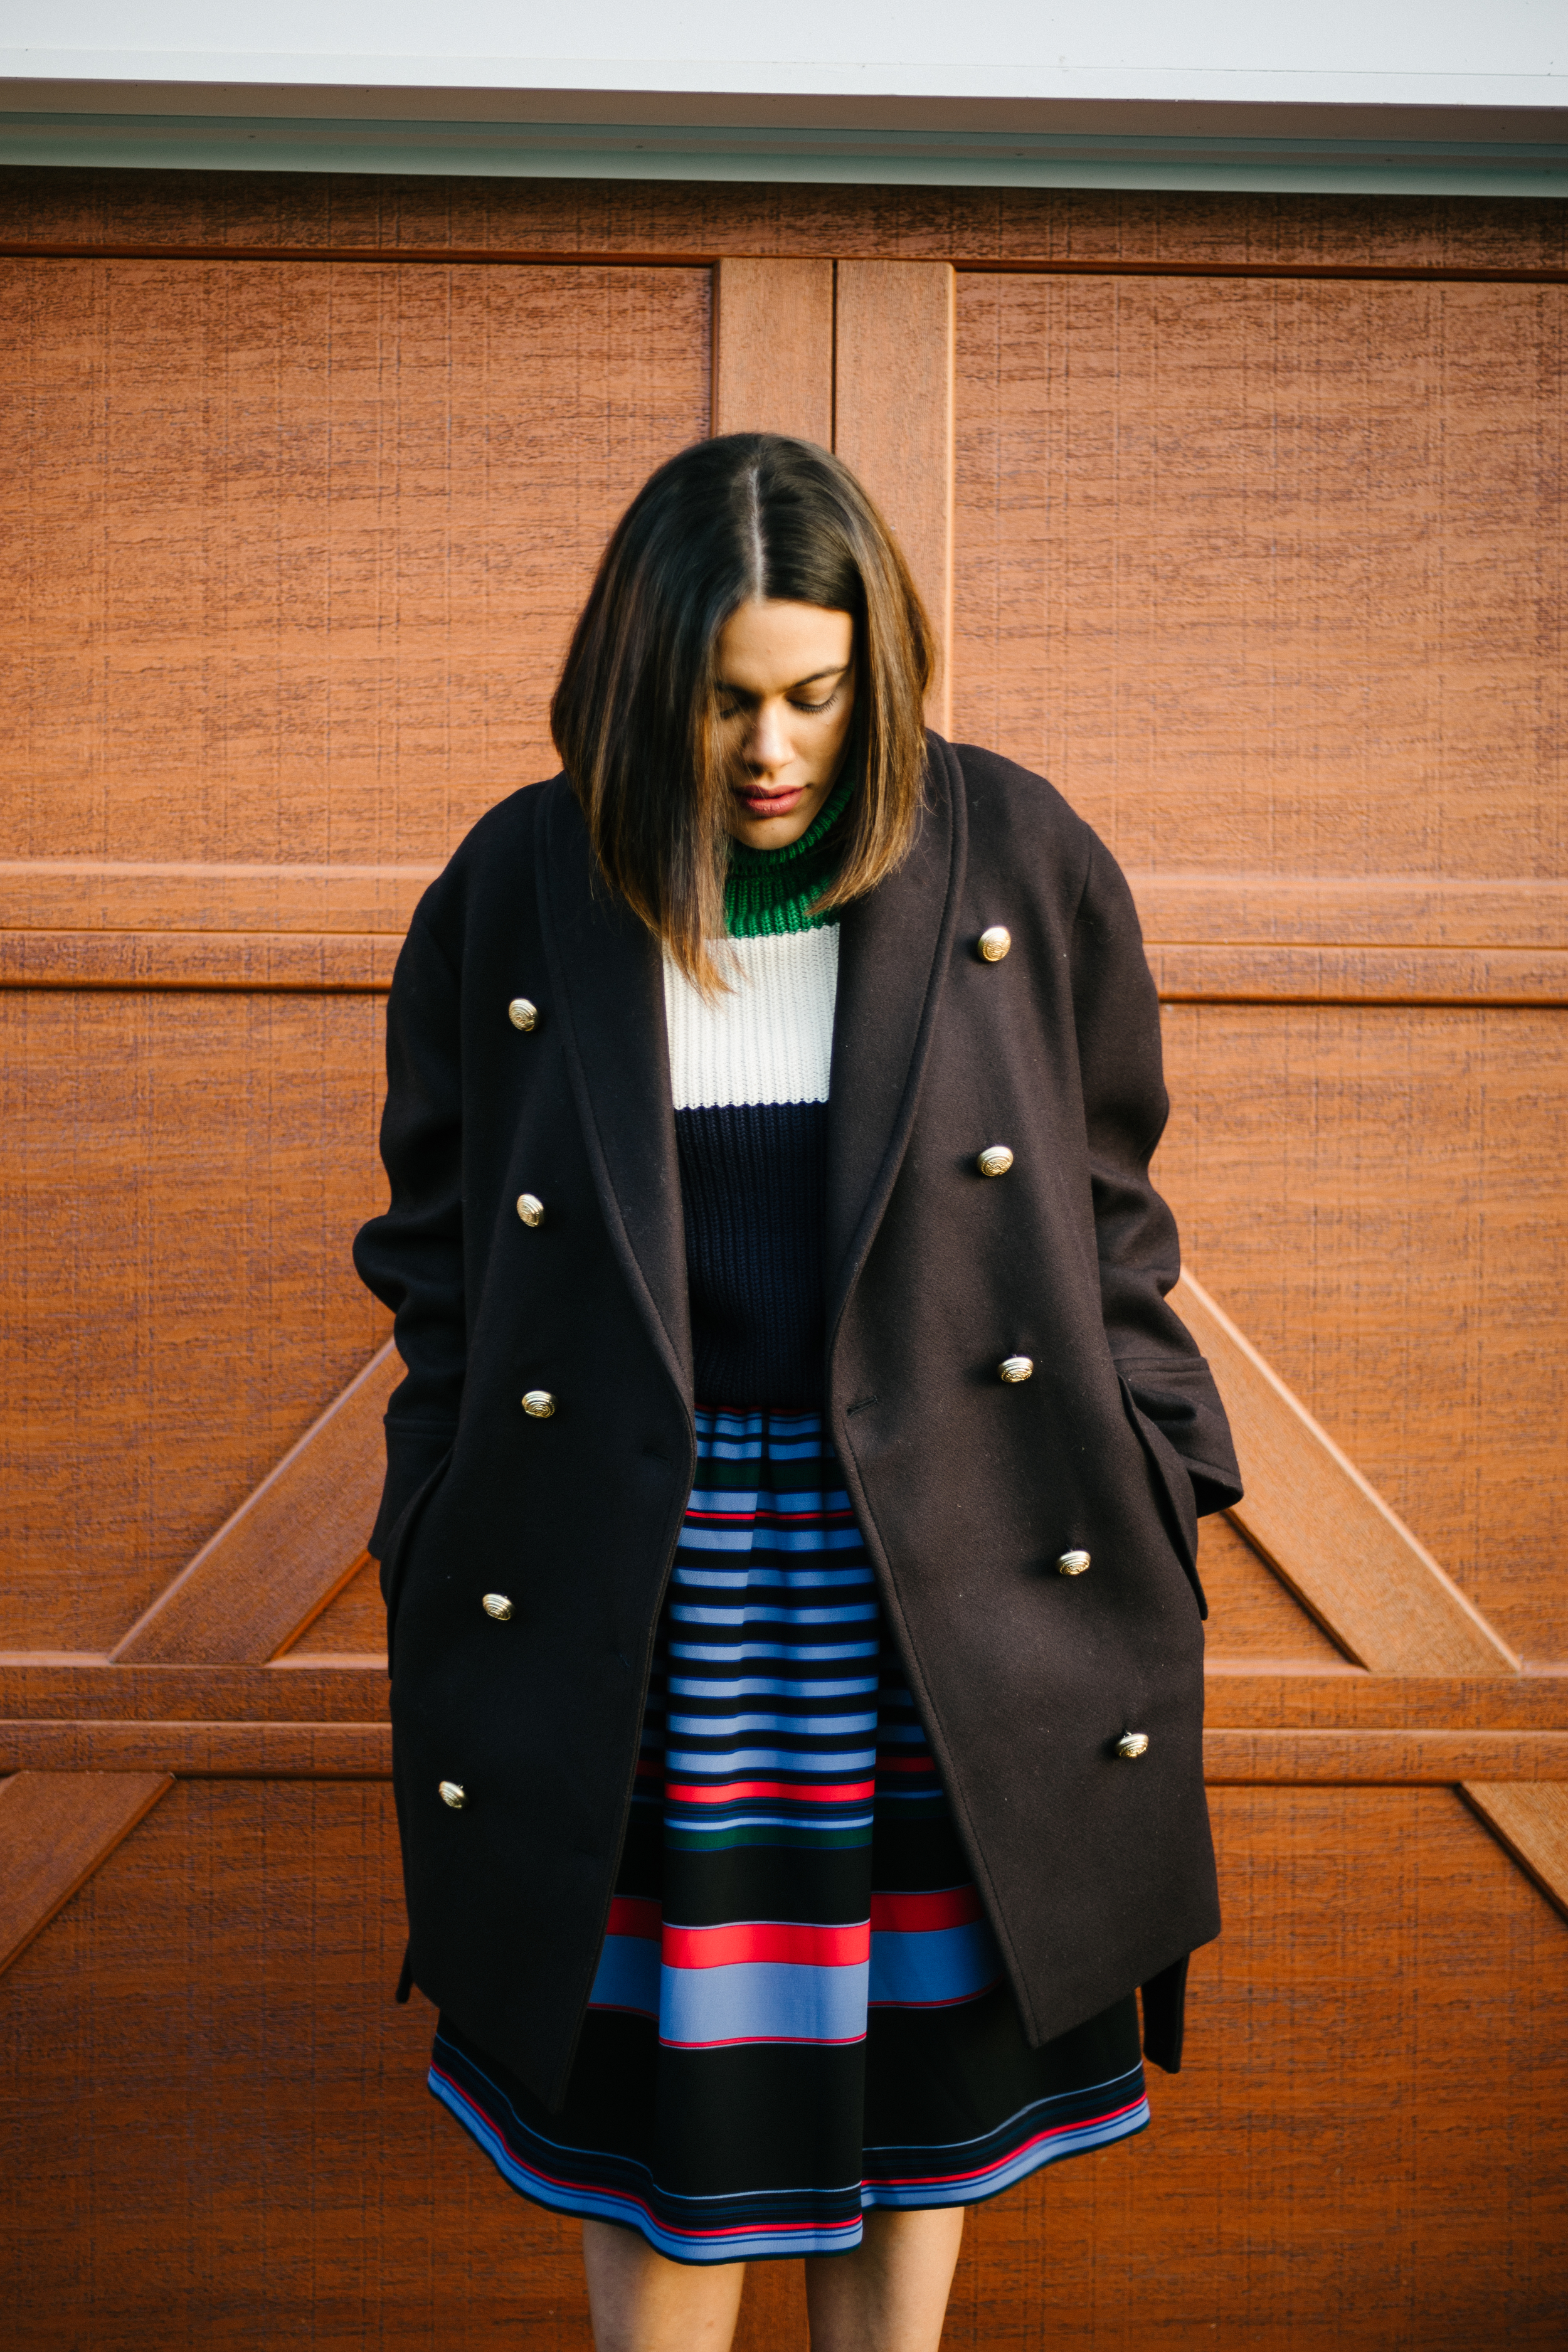 how-to-wear-stripes-on-stripes-prada-inspired-outfit.jpg